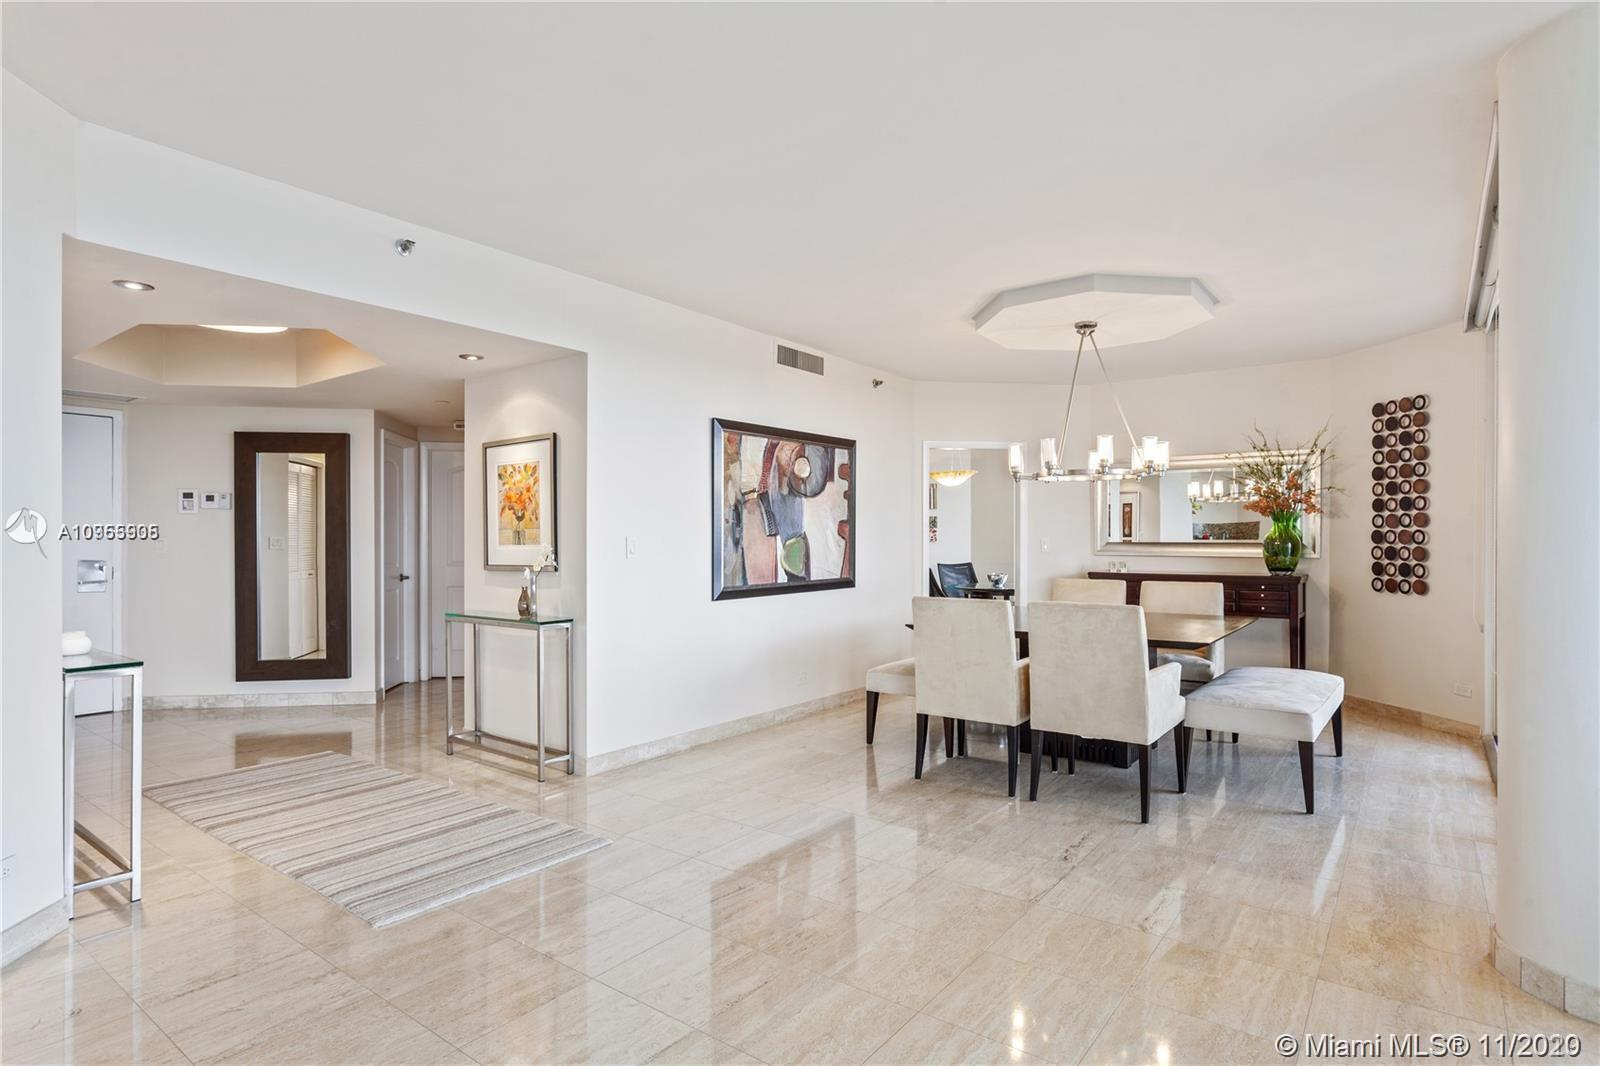 Beautifully remodeled, corner unit with direct water views of the Intracoastal Waterway! Oversized l